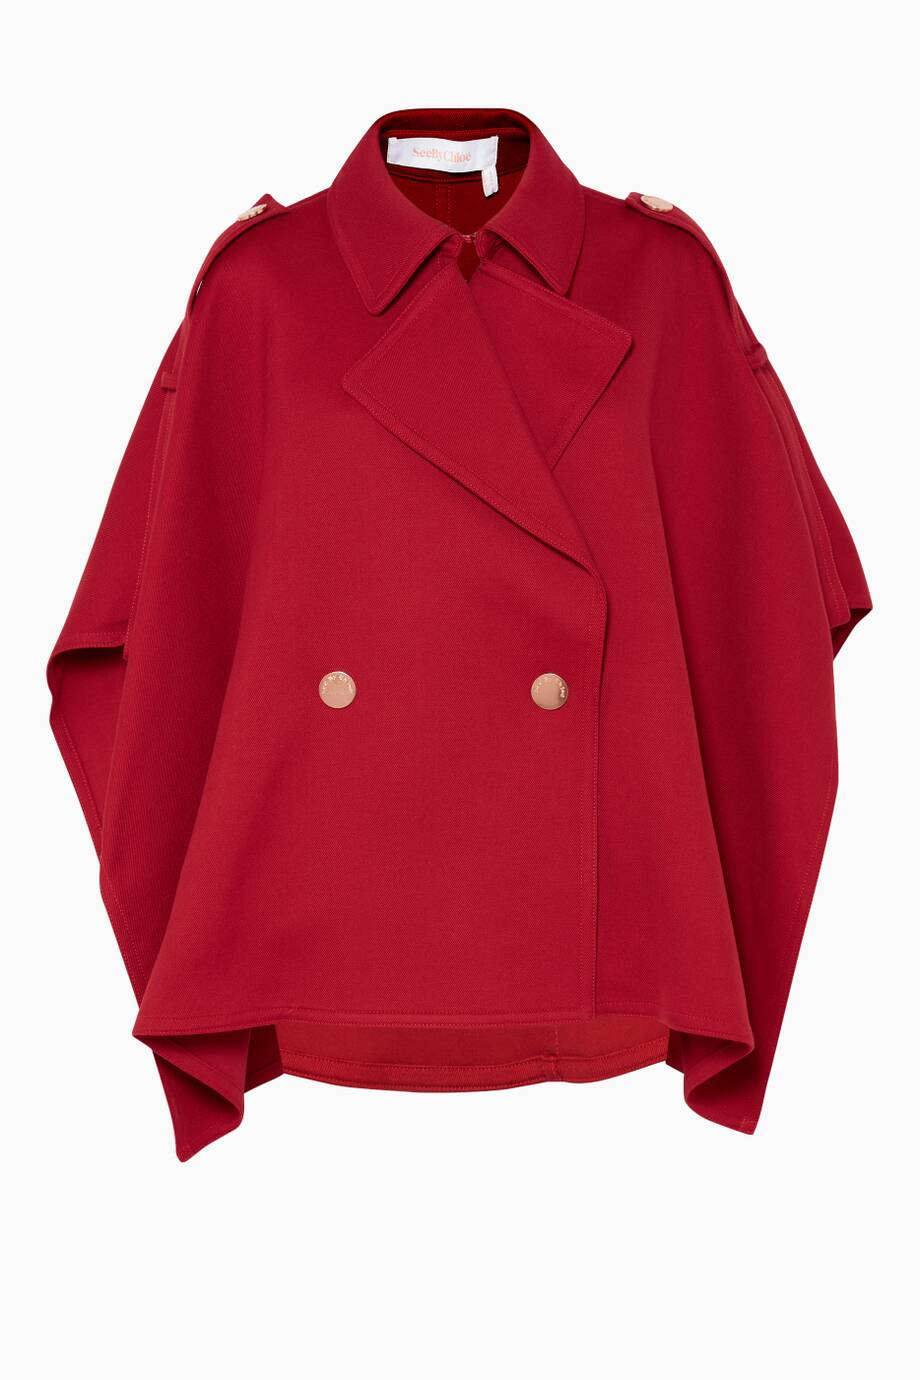 aff1048f36 Shop Luxury See By Chloé Dusky-Red Trench-Inspired Cape | Ounass KSA